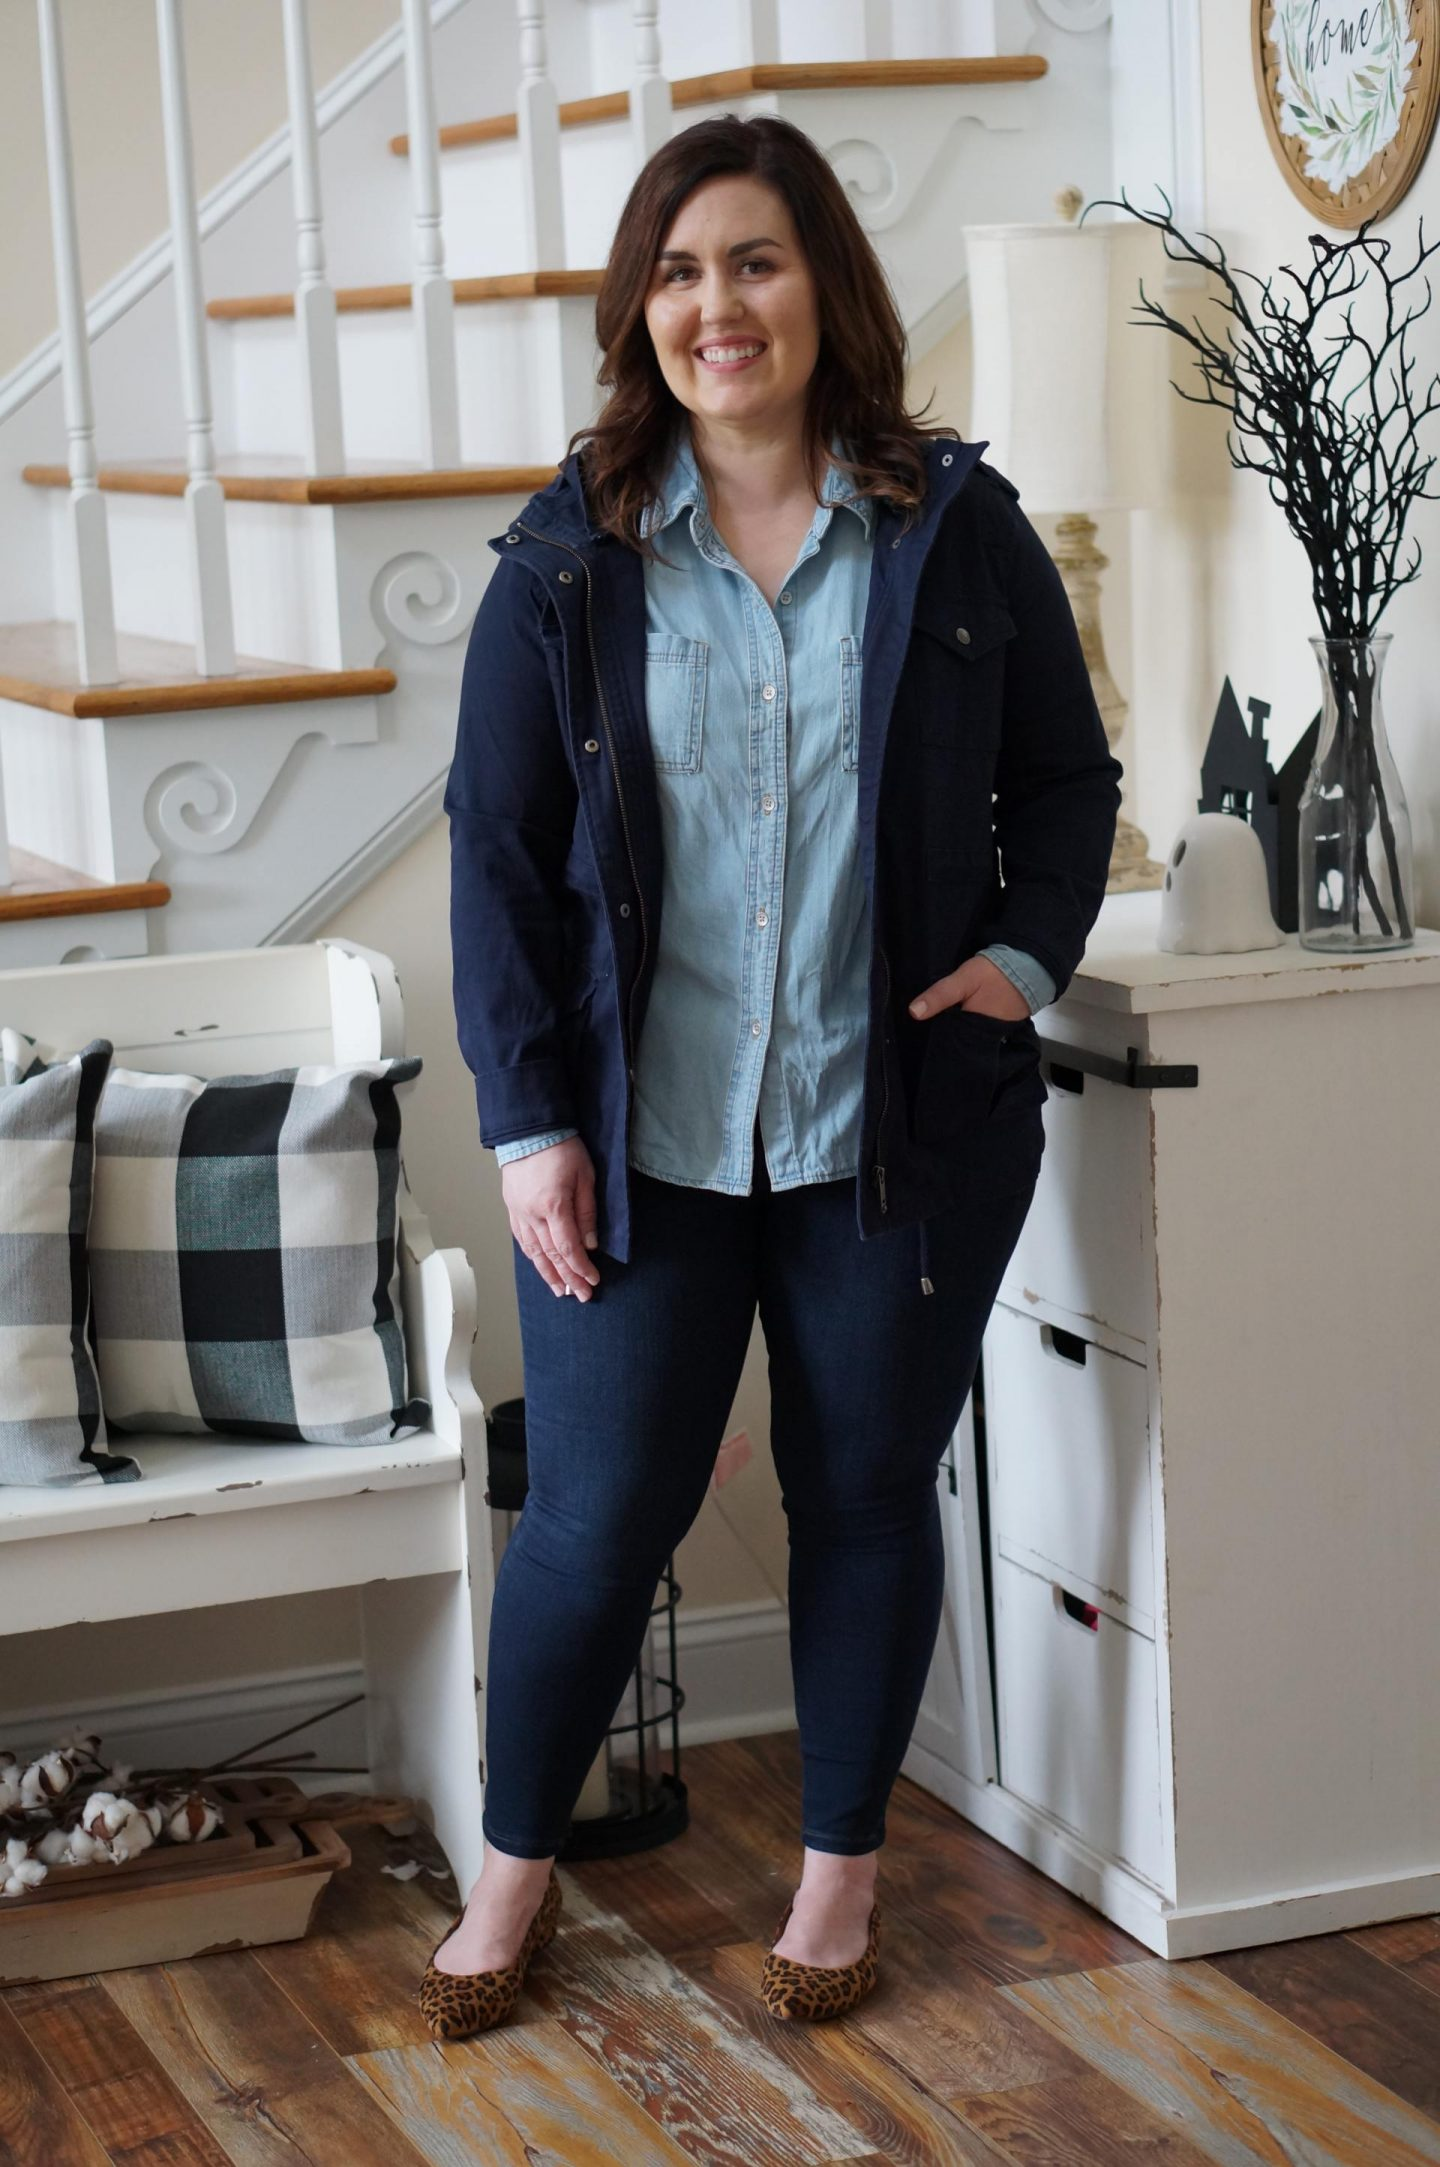 NC blogger Rebecca Lately is sharing her October 2020 Stitch Fix. Her items are perfect for transitioning into the cooler months!